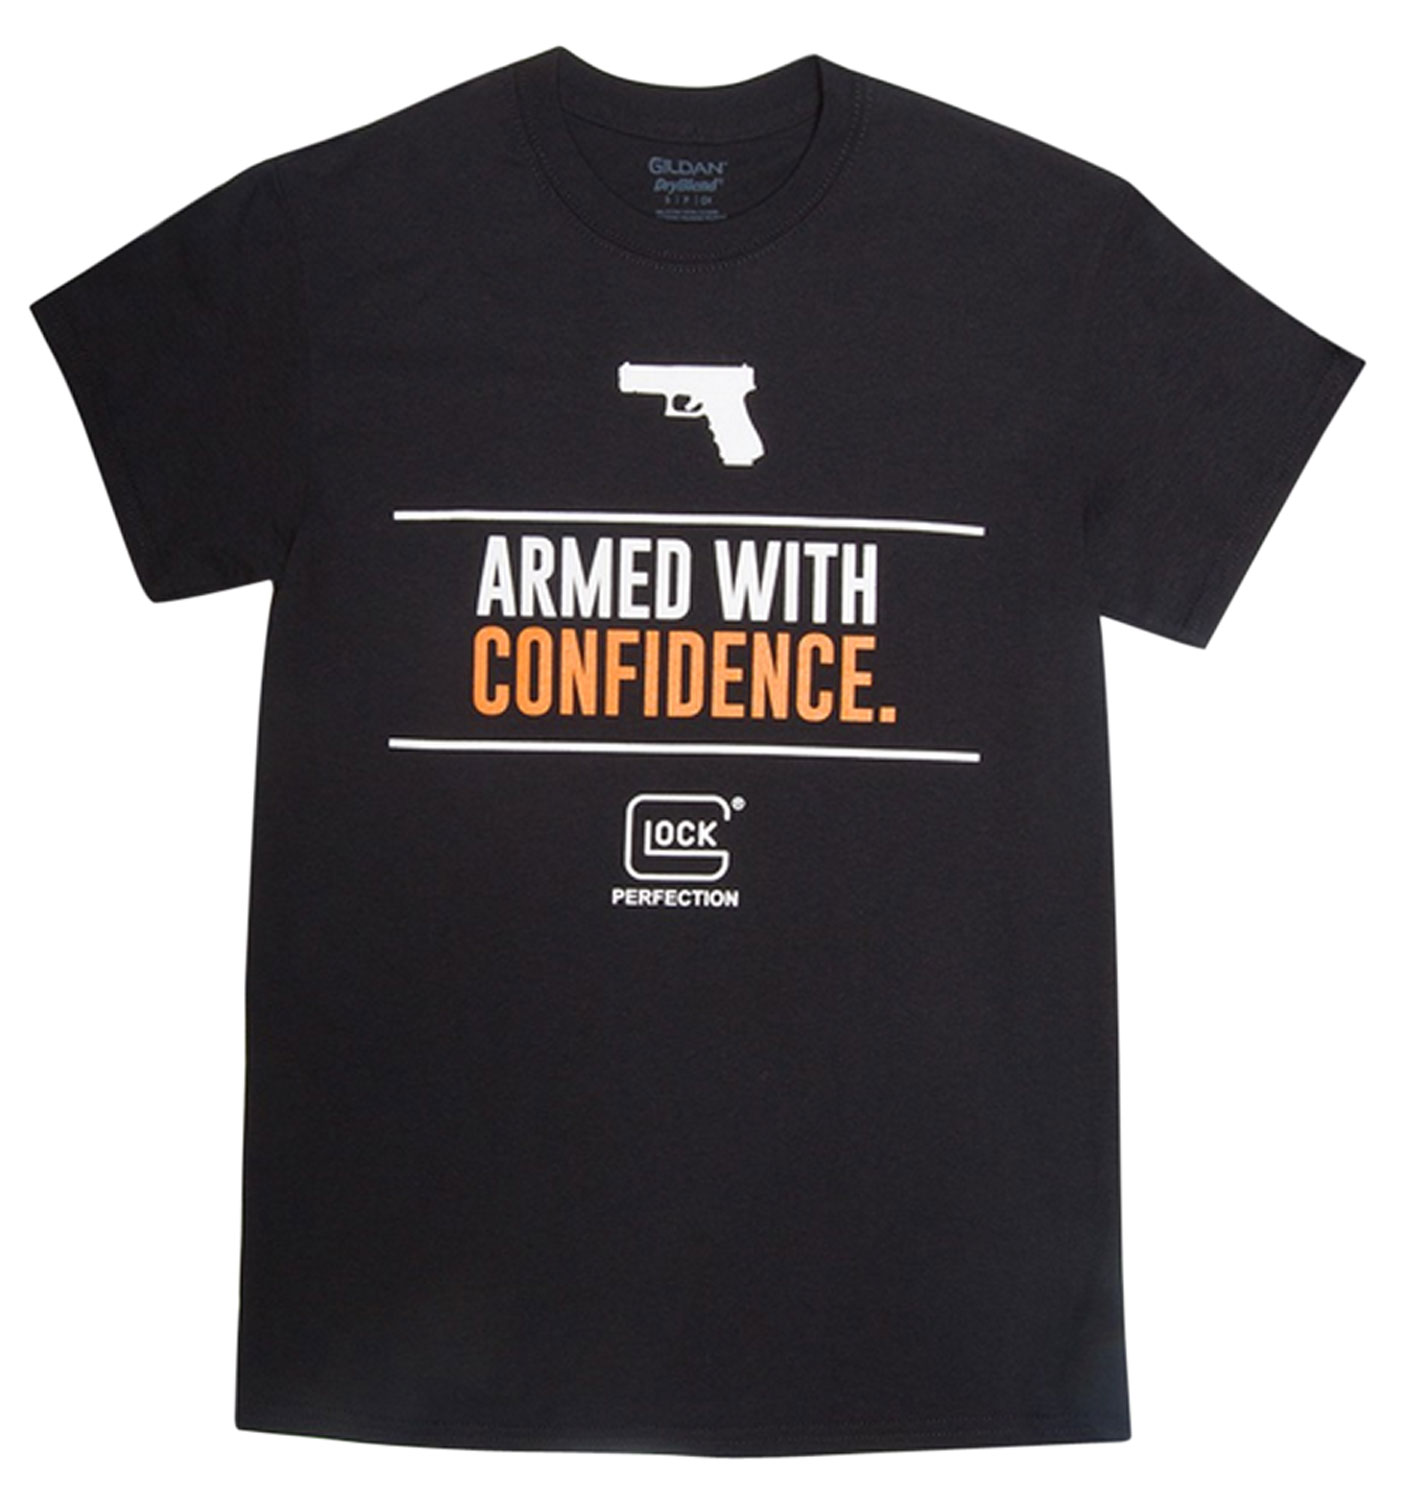 Glock AP95040 Armed With Confidence T-Shirt Short Sleeve Small Black